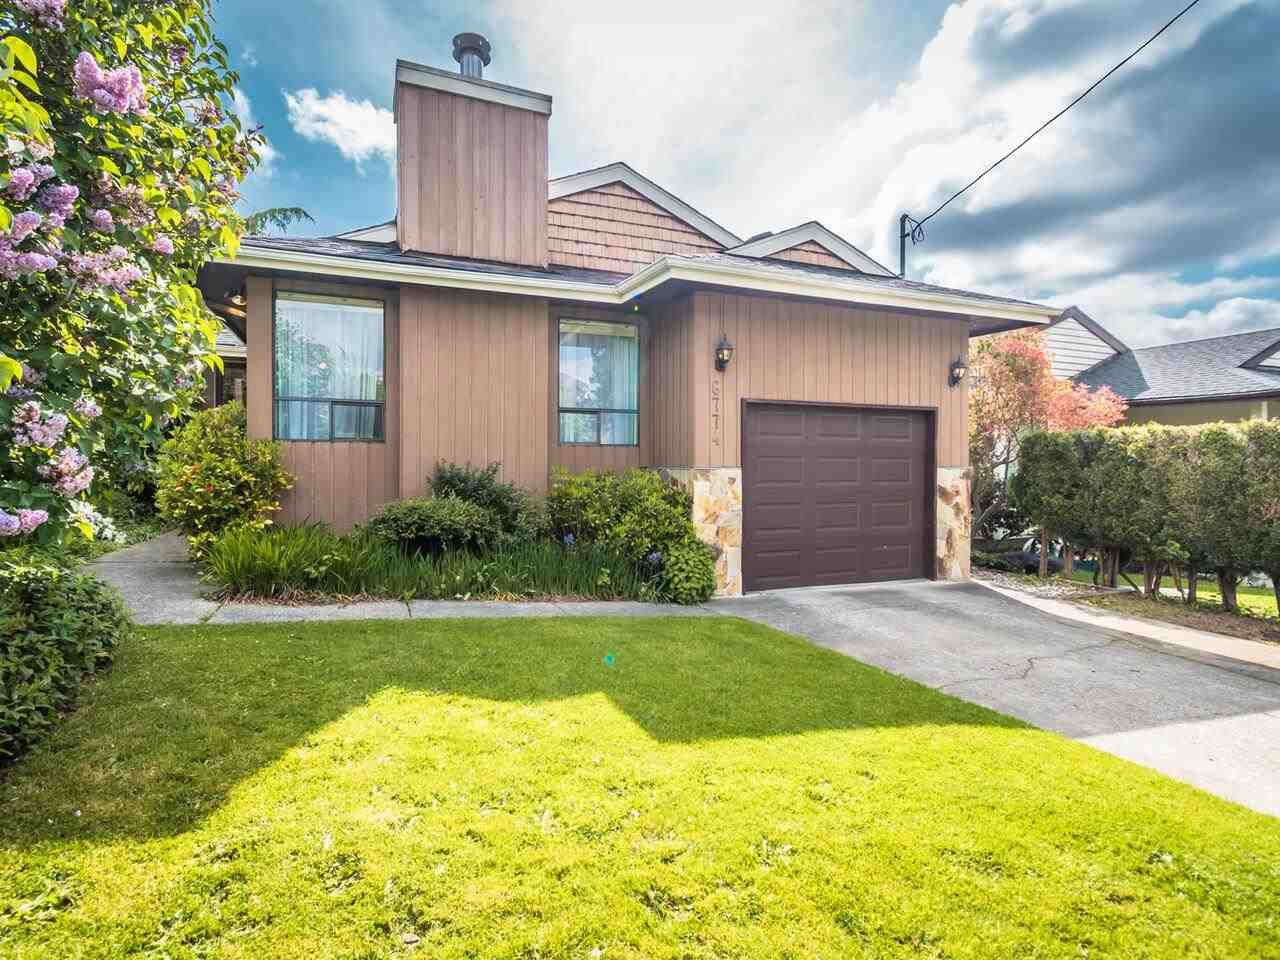 """Main Photo: 6774 197 Street in Langley: Willoughby Heights House for sale in """"Langley Meadows"""" : MLS®# R2583199"""